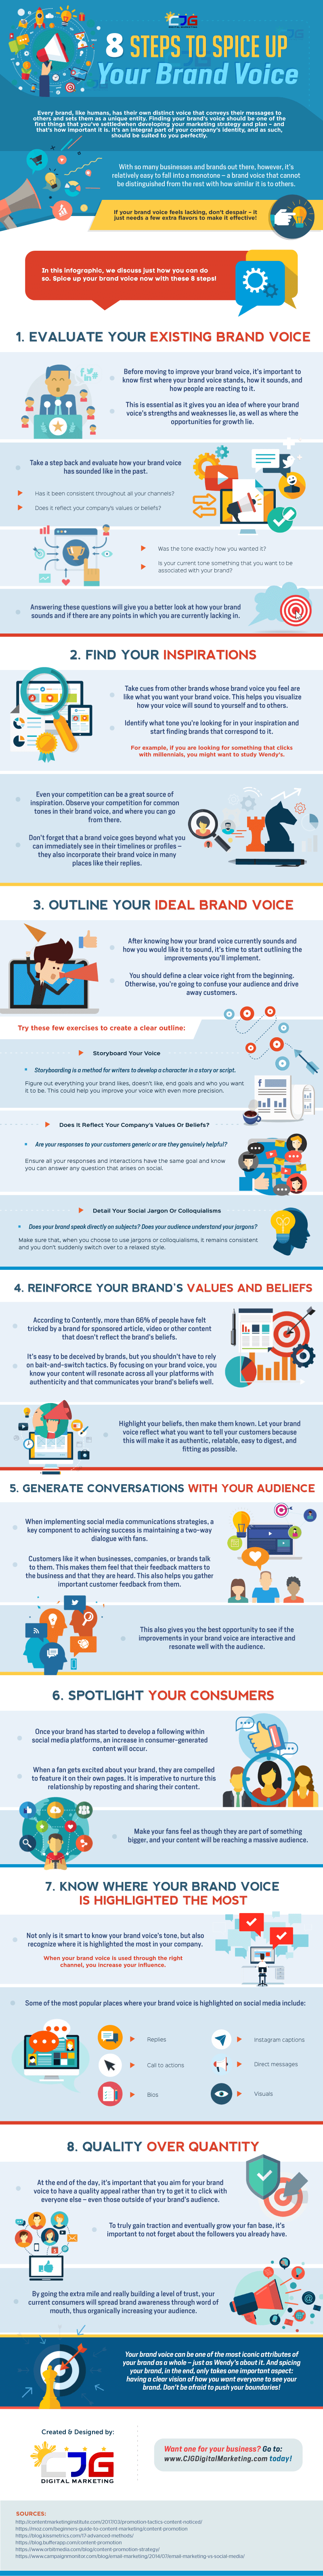 Steps to Spice Up Your Brand Voice